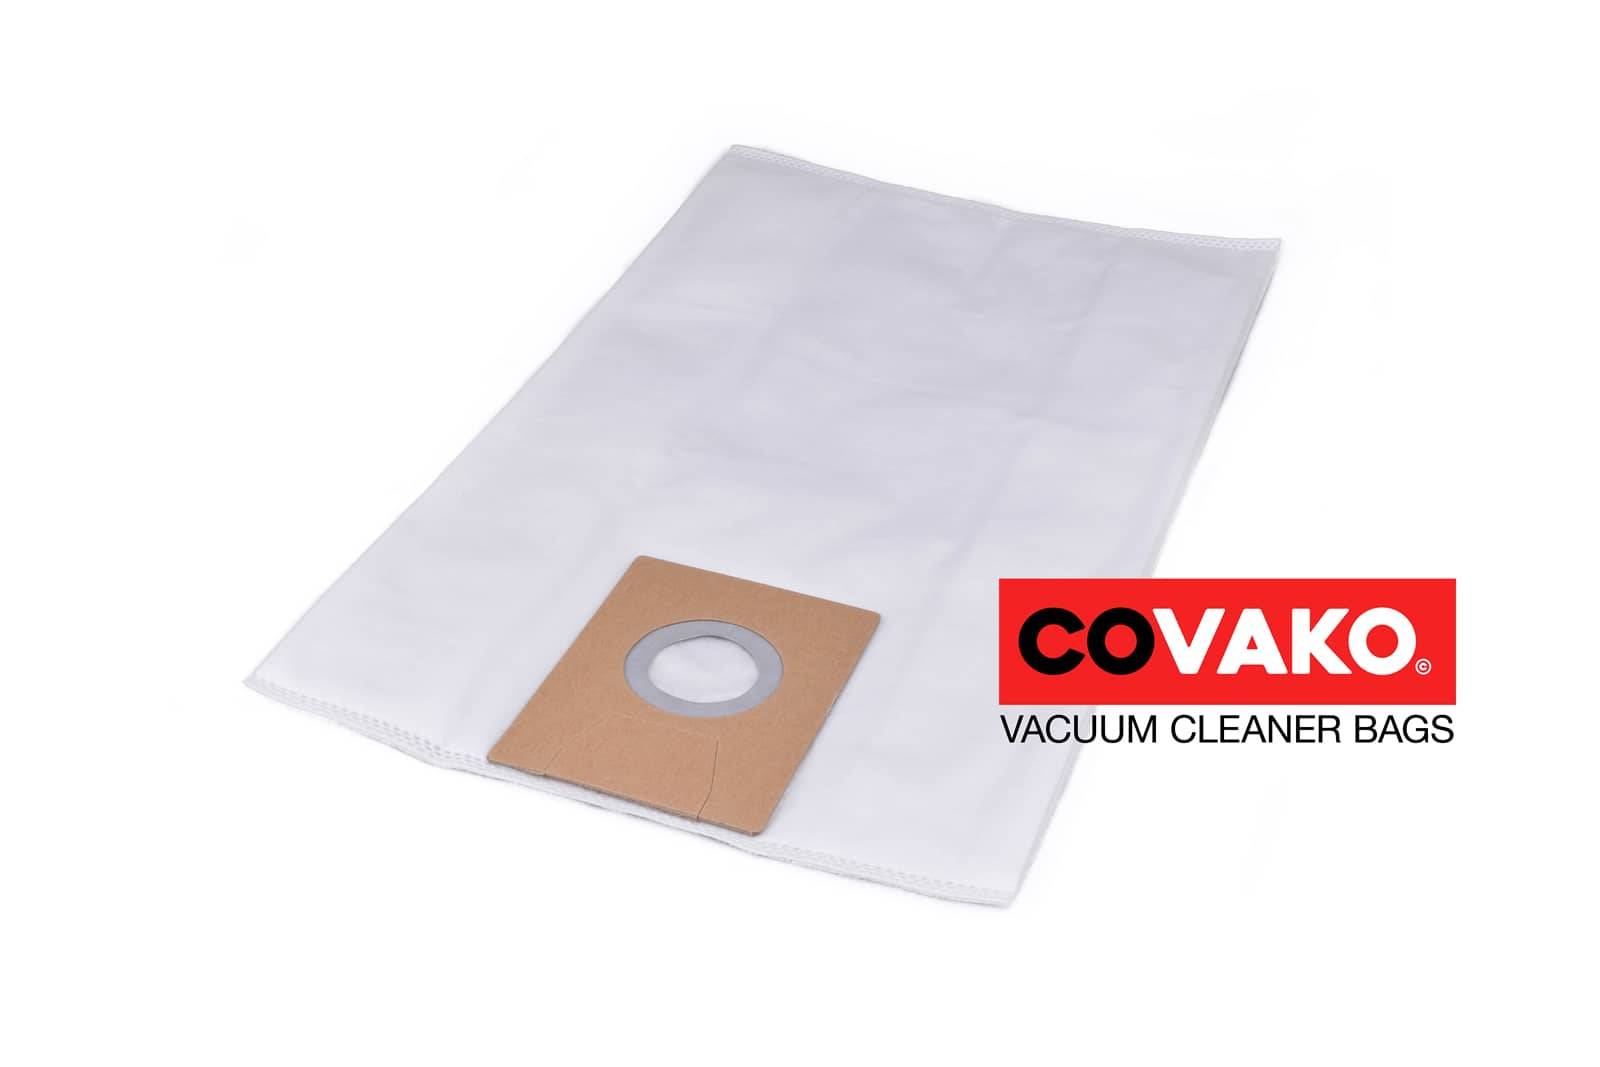 Fakir S 20 E / Synthesis - Fakir vacuum cleaner bags